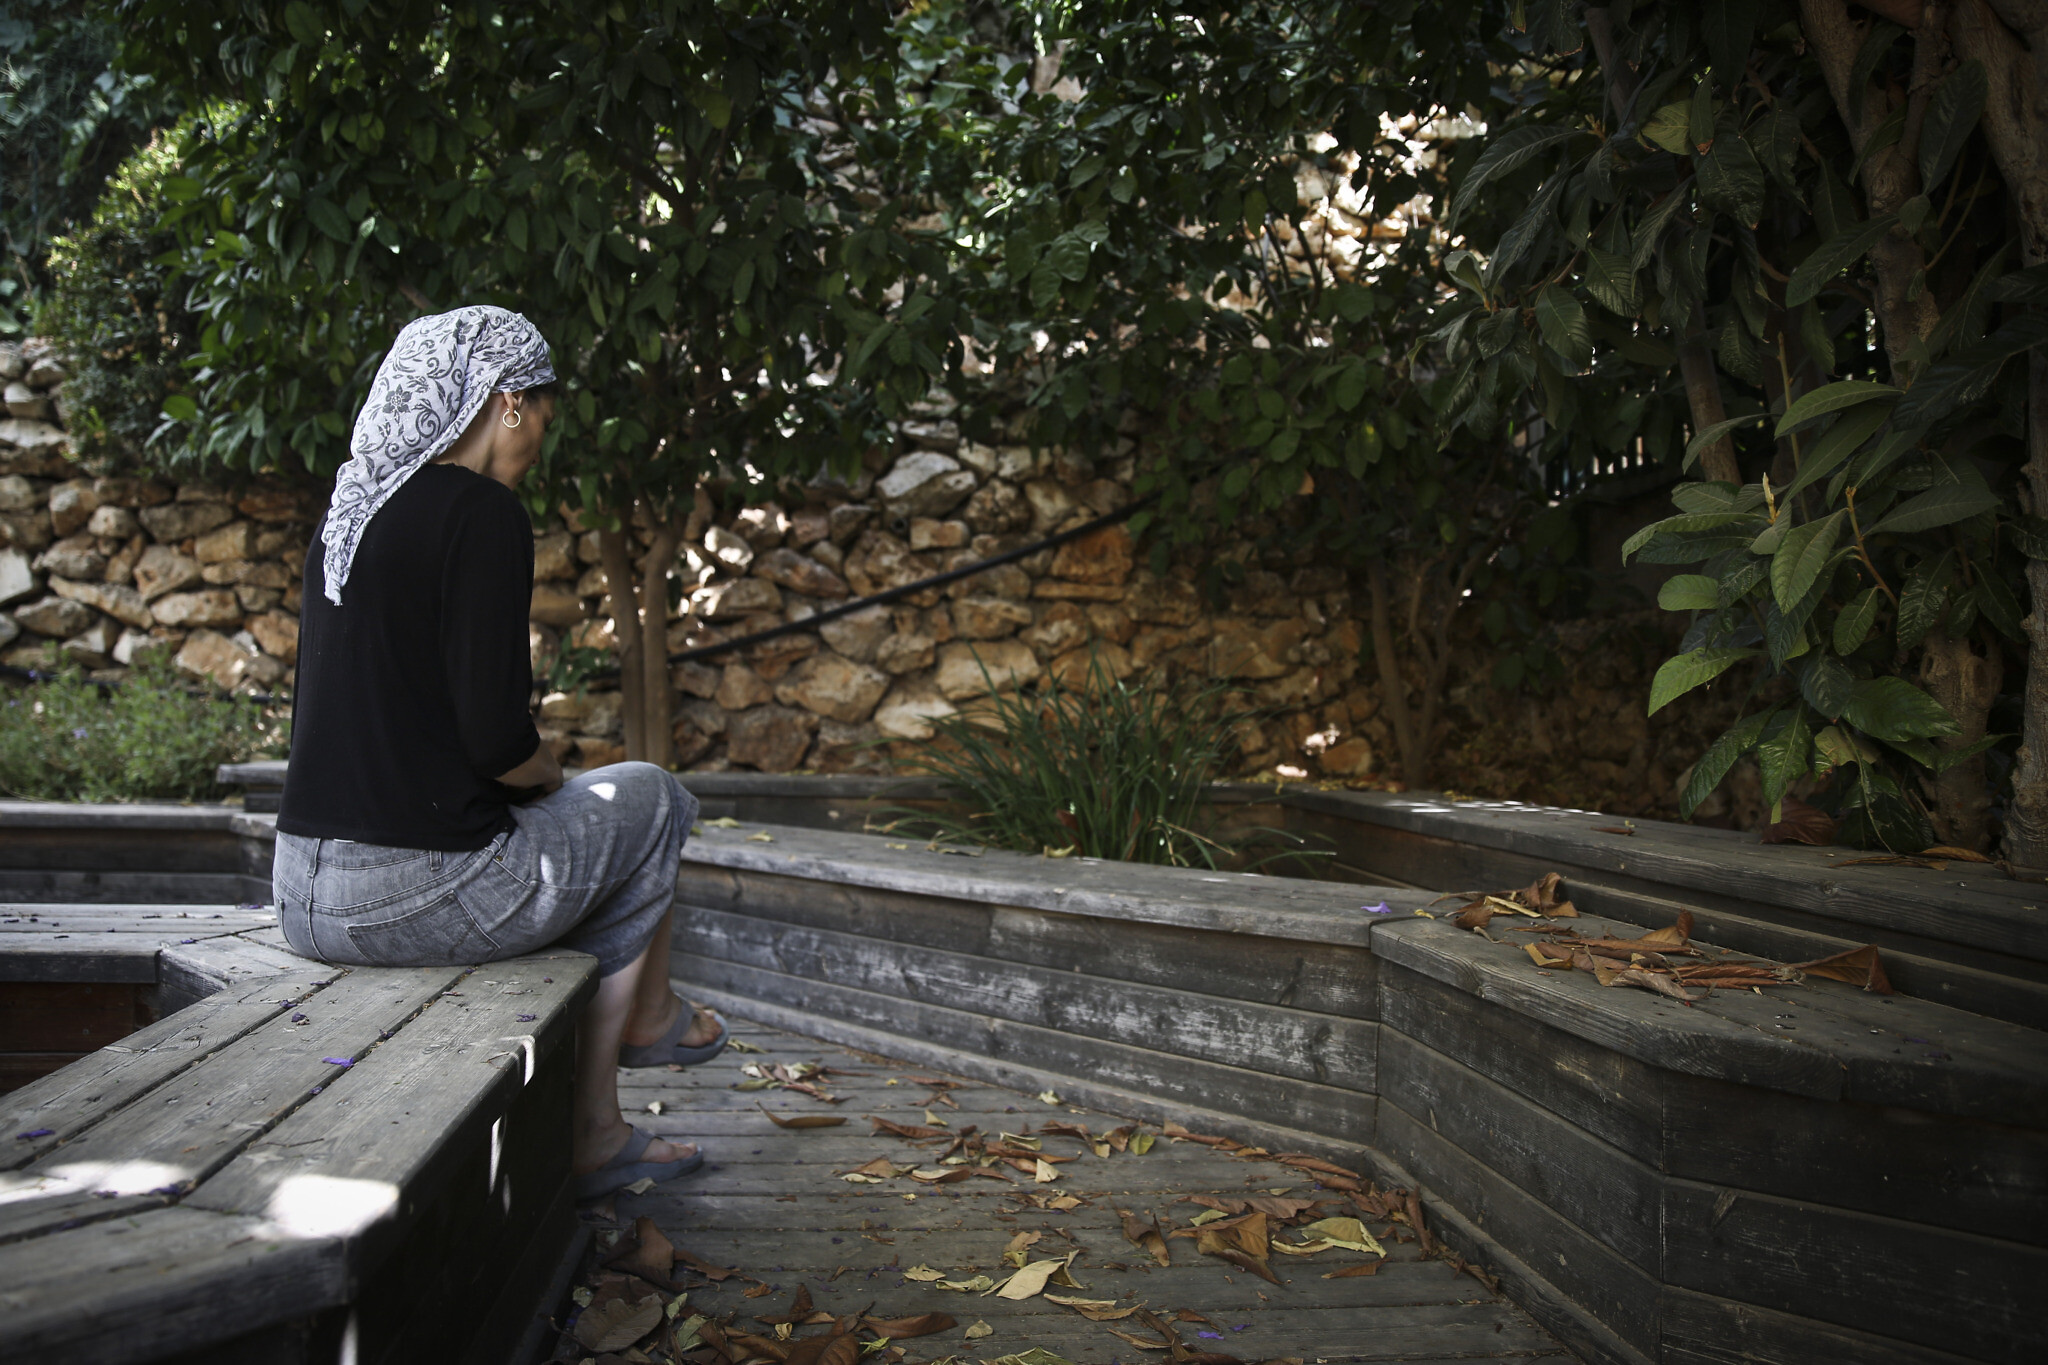 Orthodox Jewish woman sitting in a garden of a women's shelter for domestic violence